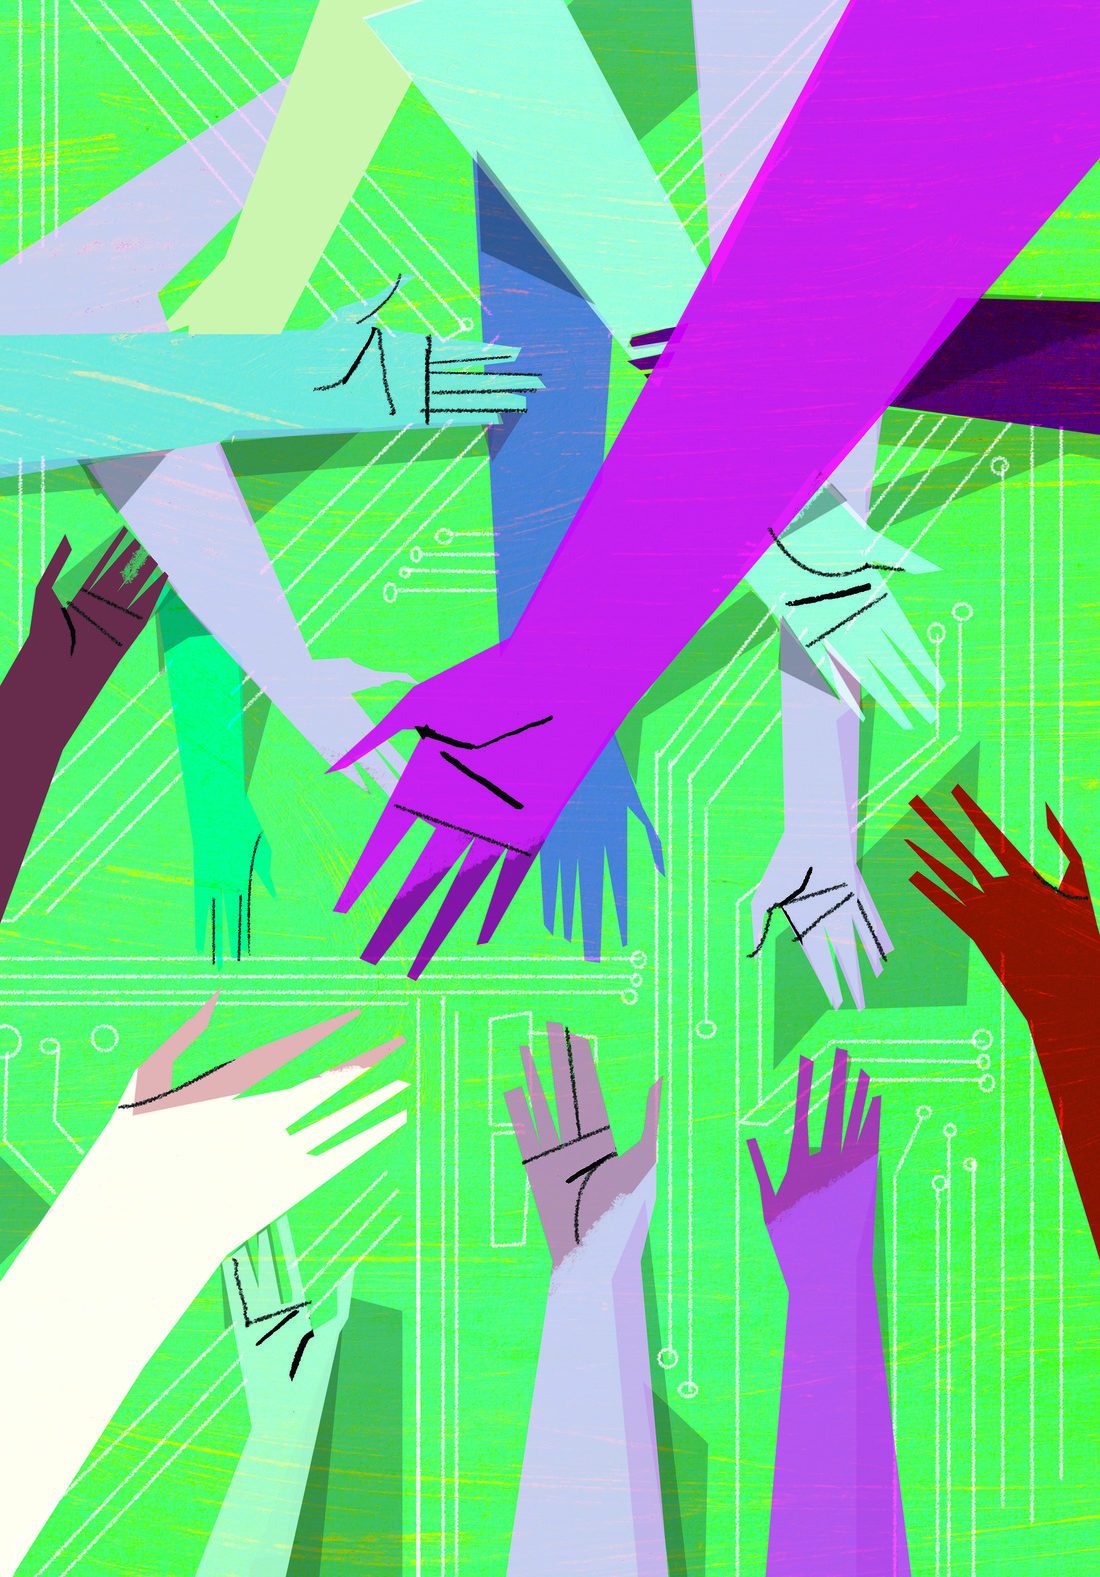 Drawing of brightly colored hands reaching toward each other.